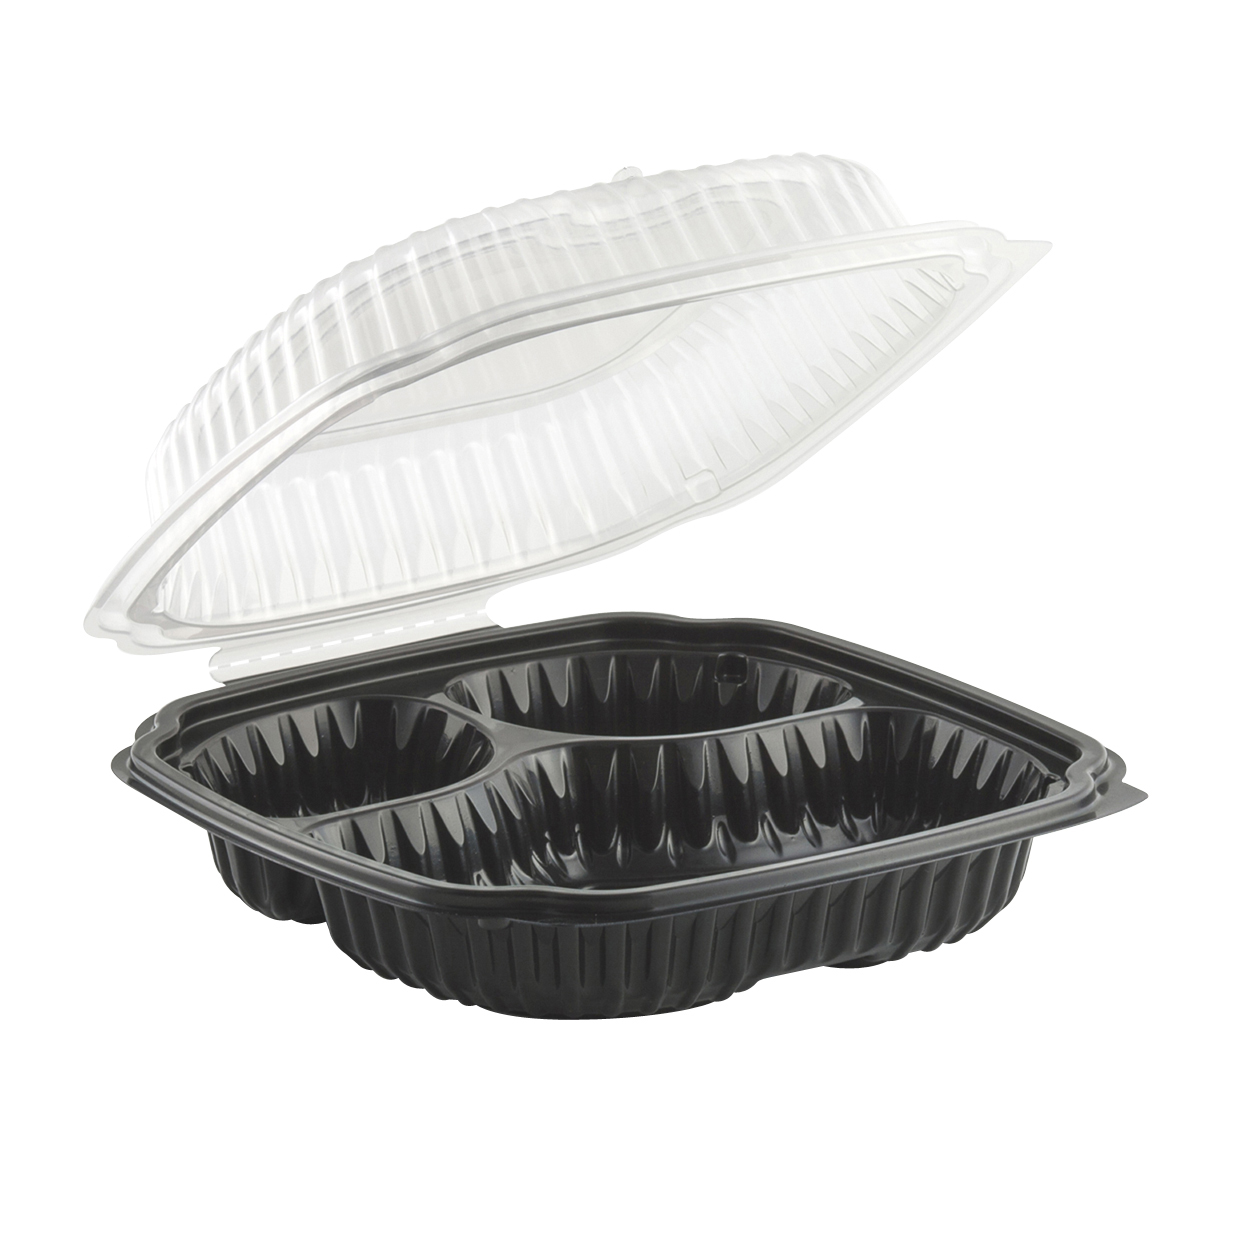 Plastic Hinged Microwavable Container 3 Compartment 9 X9 X3 Black Clear In 2020 Microwavable Containers Hinges Food Wrap